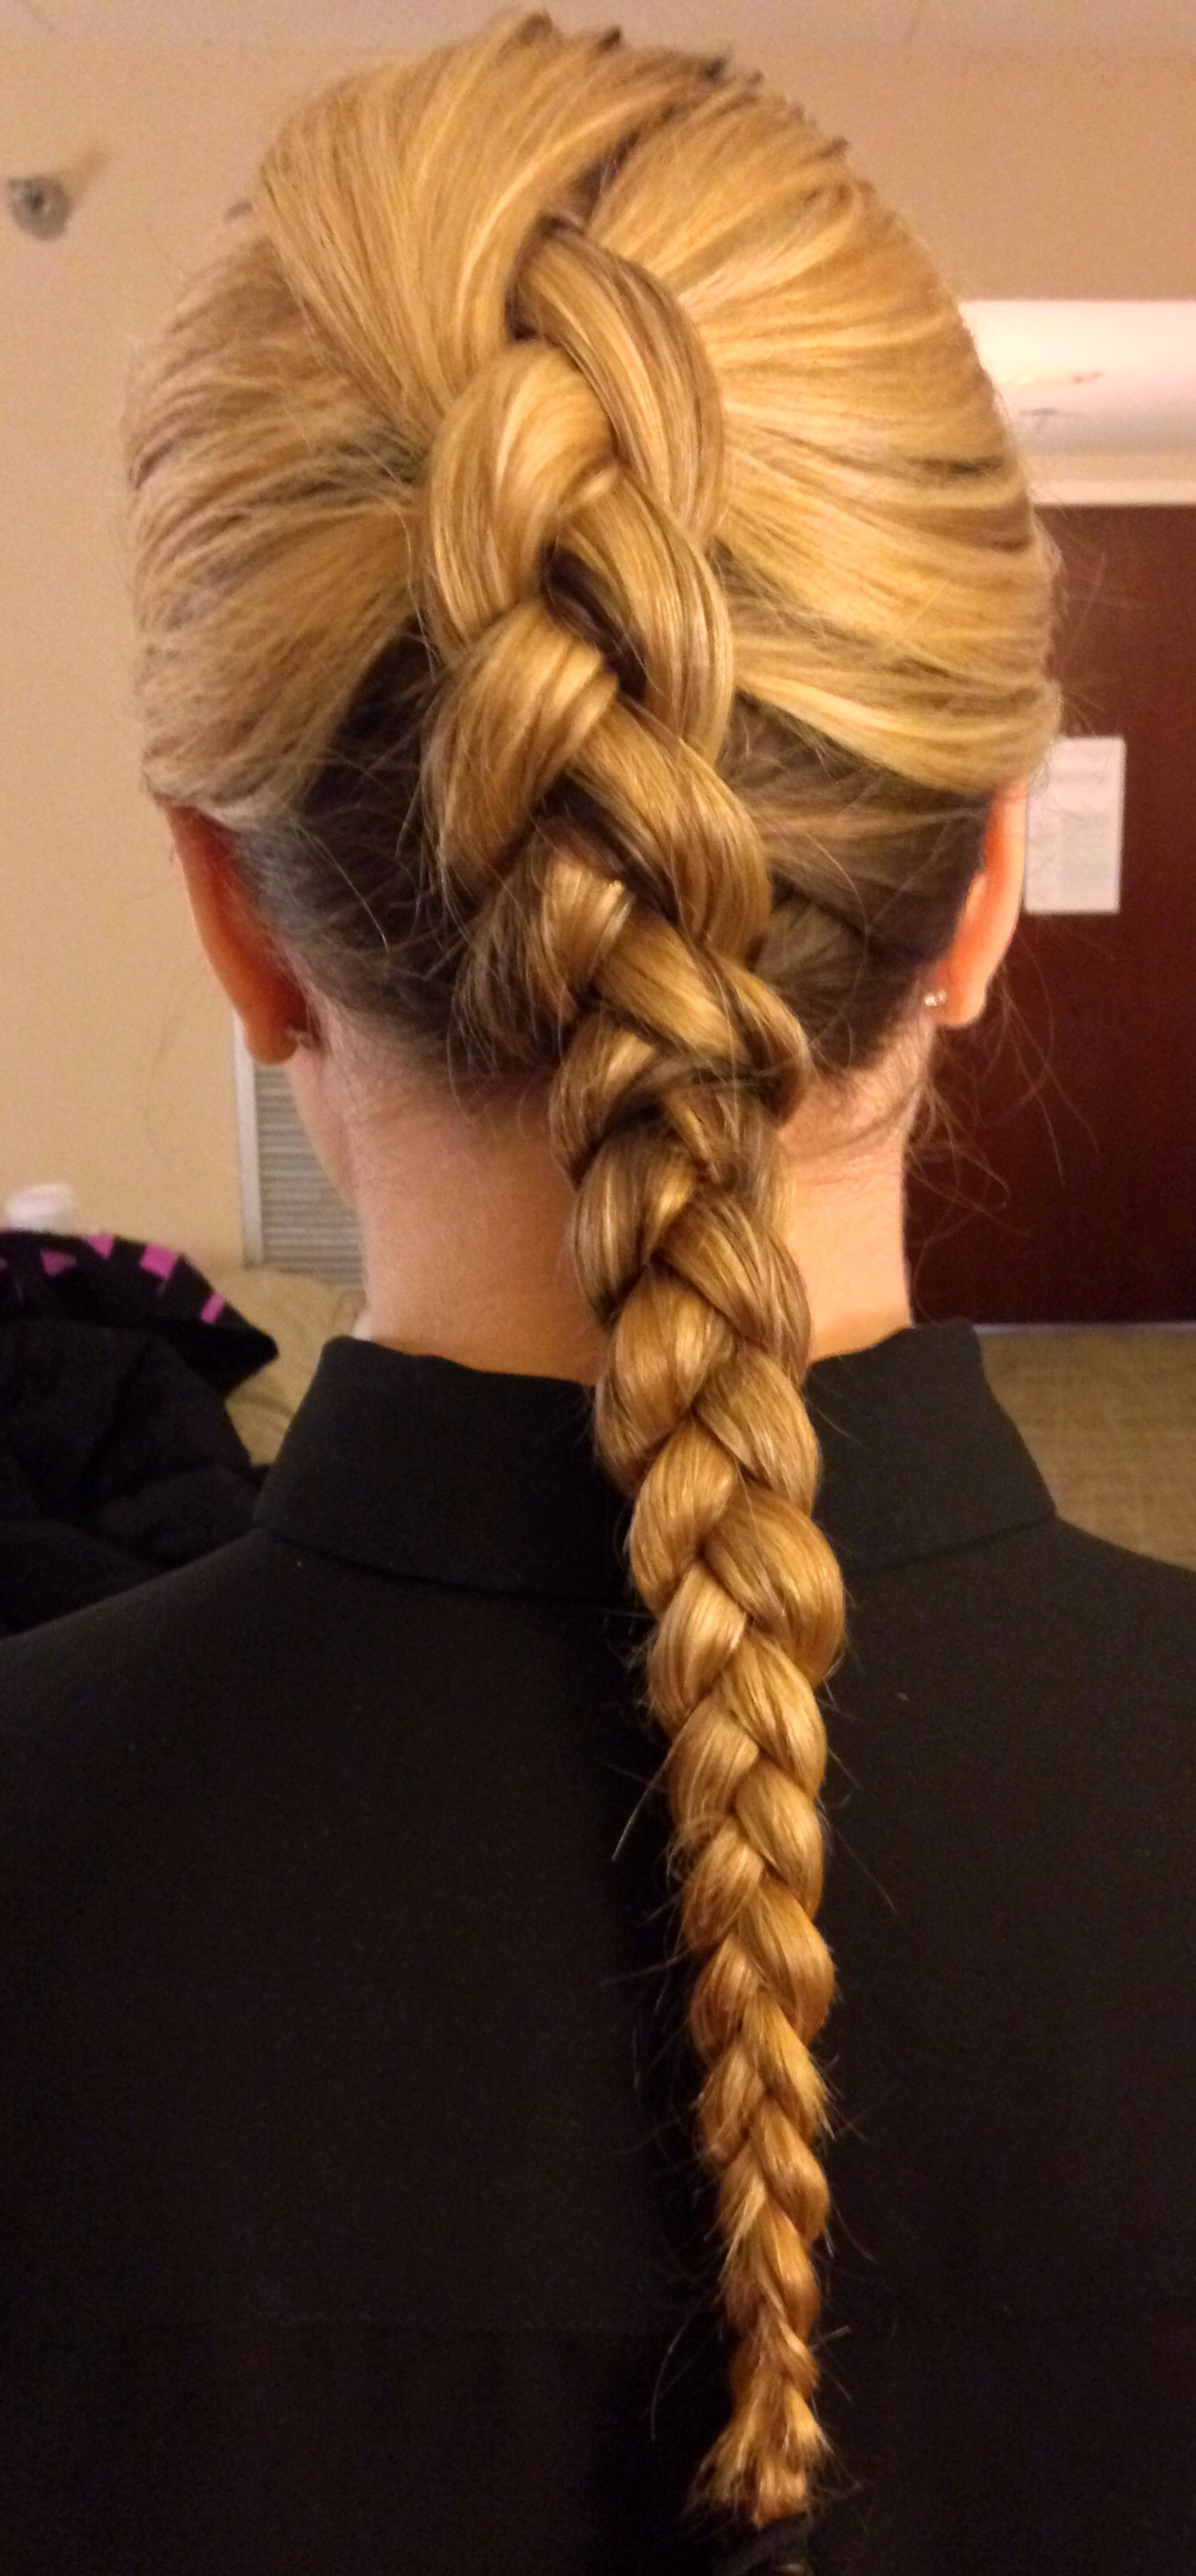 my hair for flight attendant training! | faa approved. | pinterest